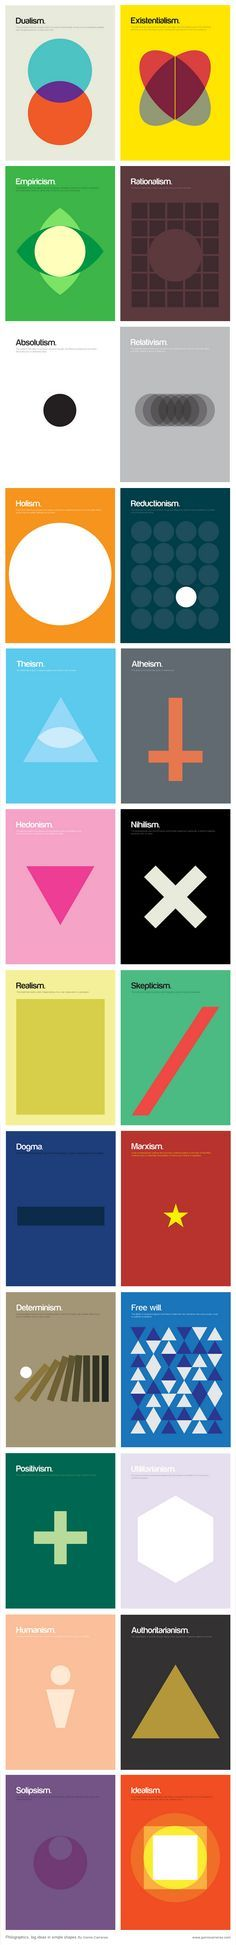 """Philographics"": Big ideas illustrated in simple shapes. By Genís Carreras."